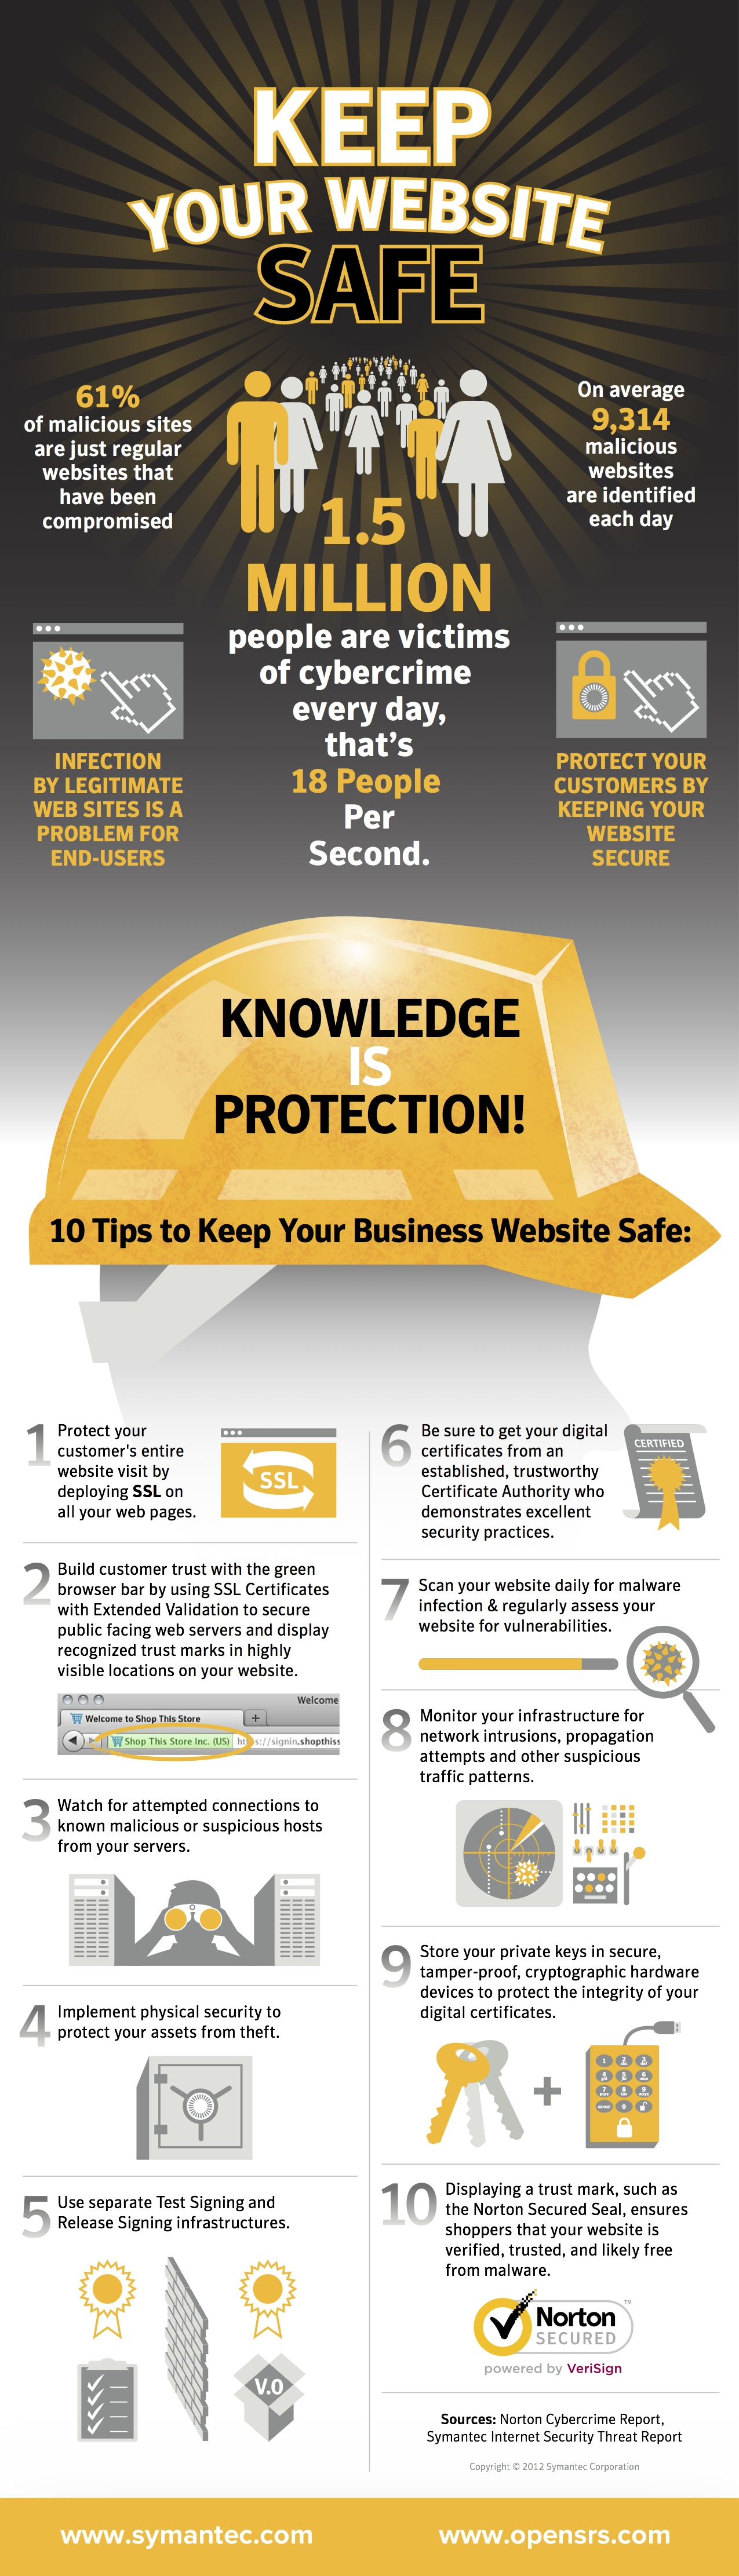 Keep_Your_Website_Safe_tucows